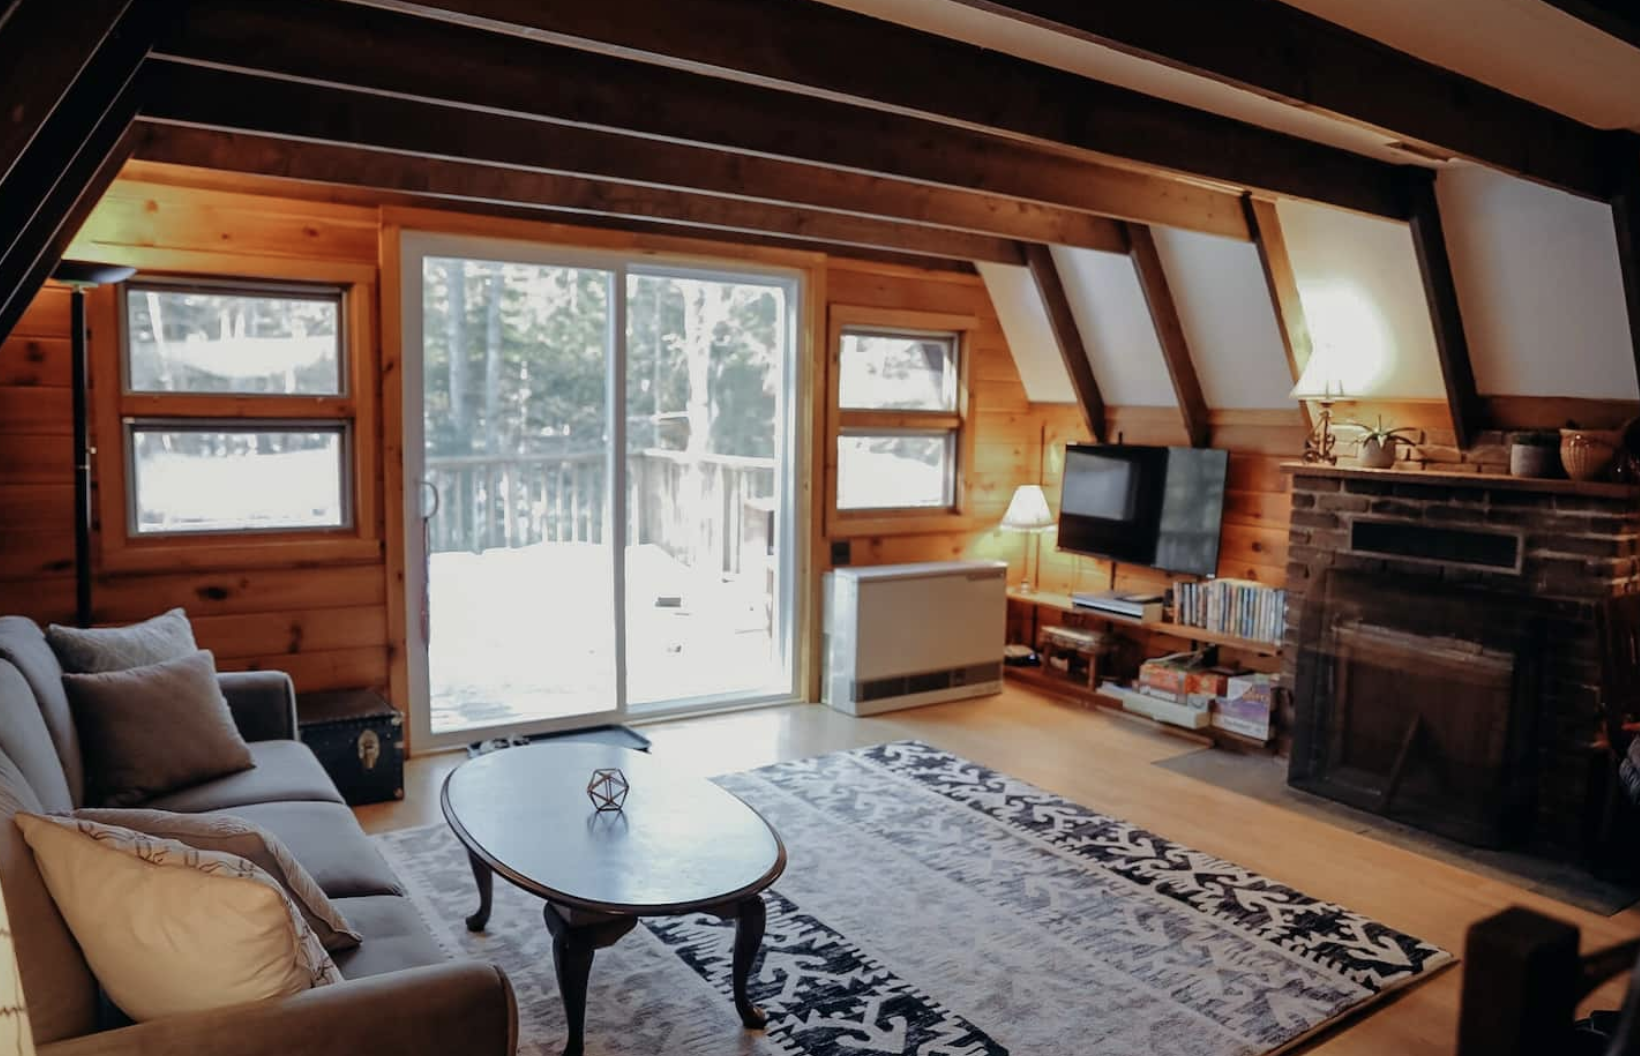 Warm Pine A-frame Nestled In The Trees! from airbnb post by Nicole Eva travel post